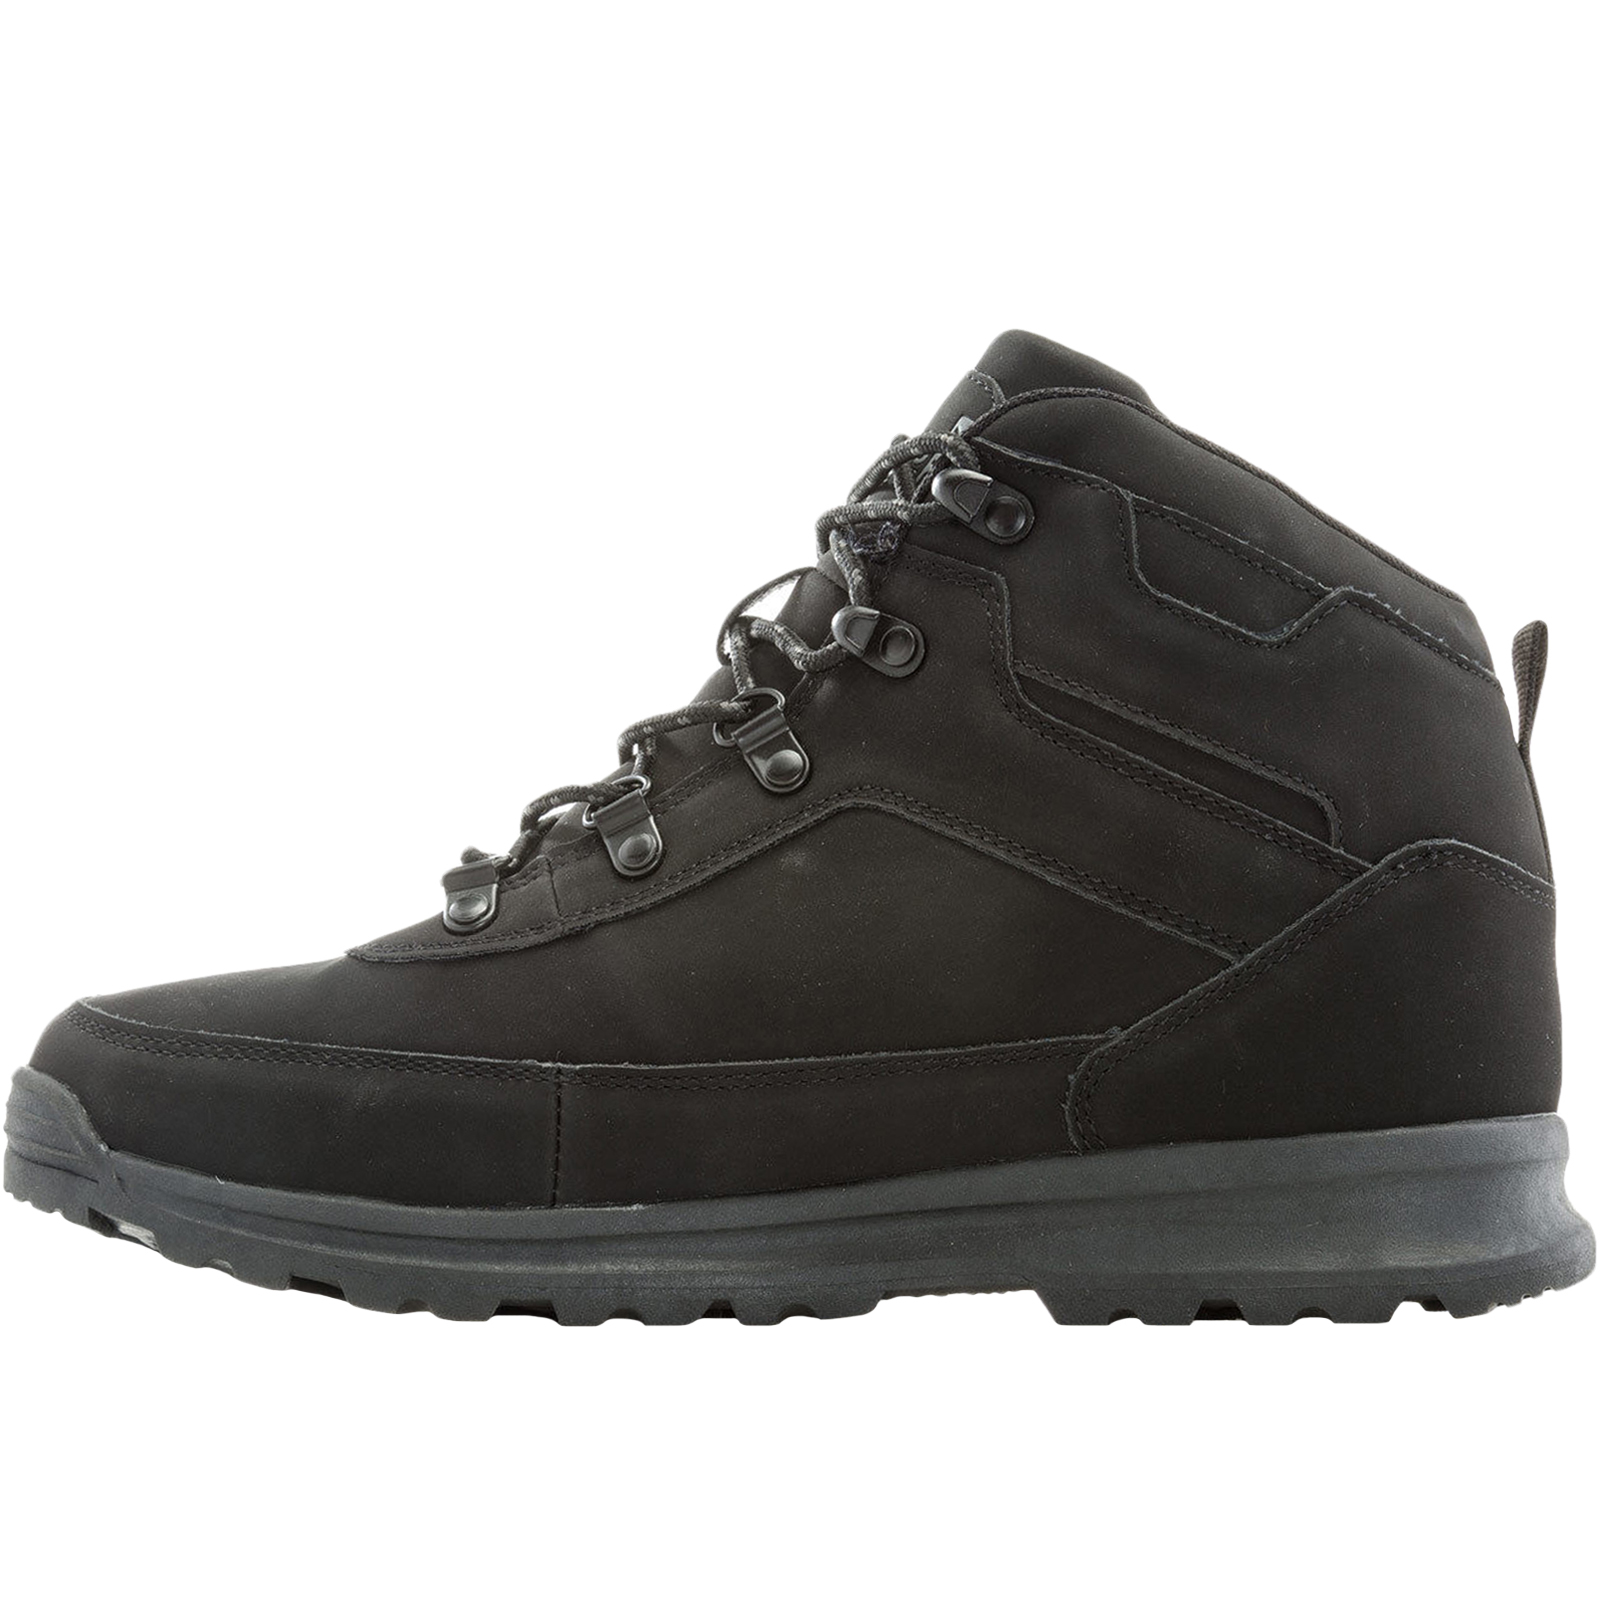 Henleys-Mens-Travis-Lace-Up-Casual-High-Top-Outdoor-Hiking-Walking-Boots-Shoes thumbnail 3